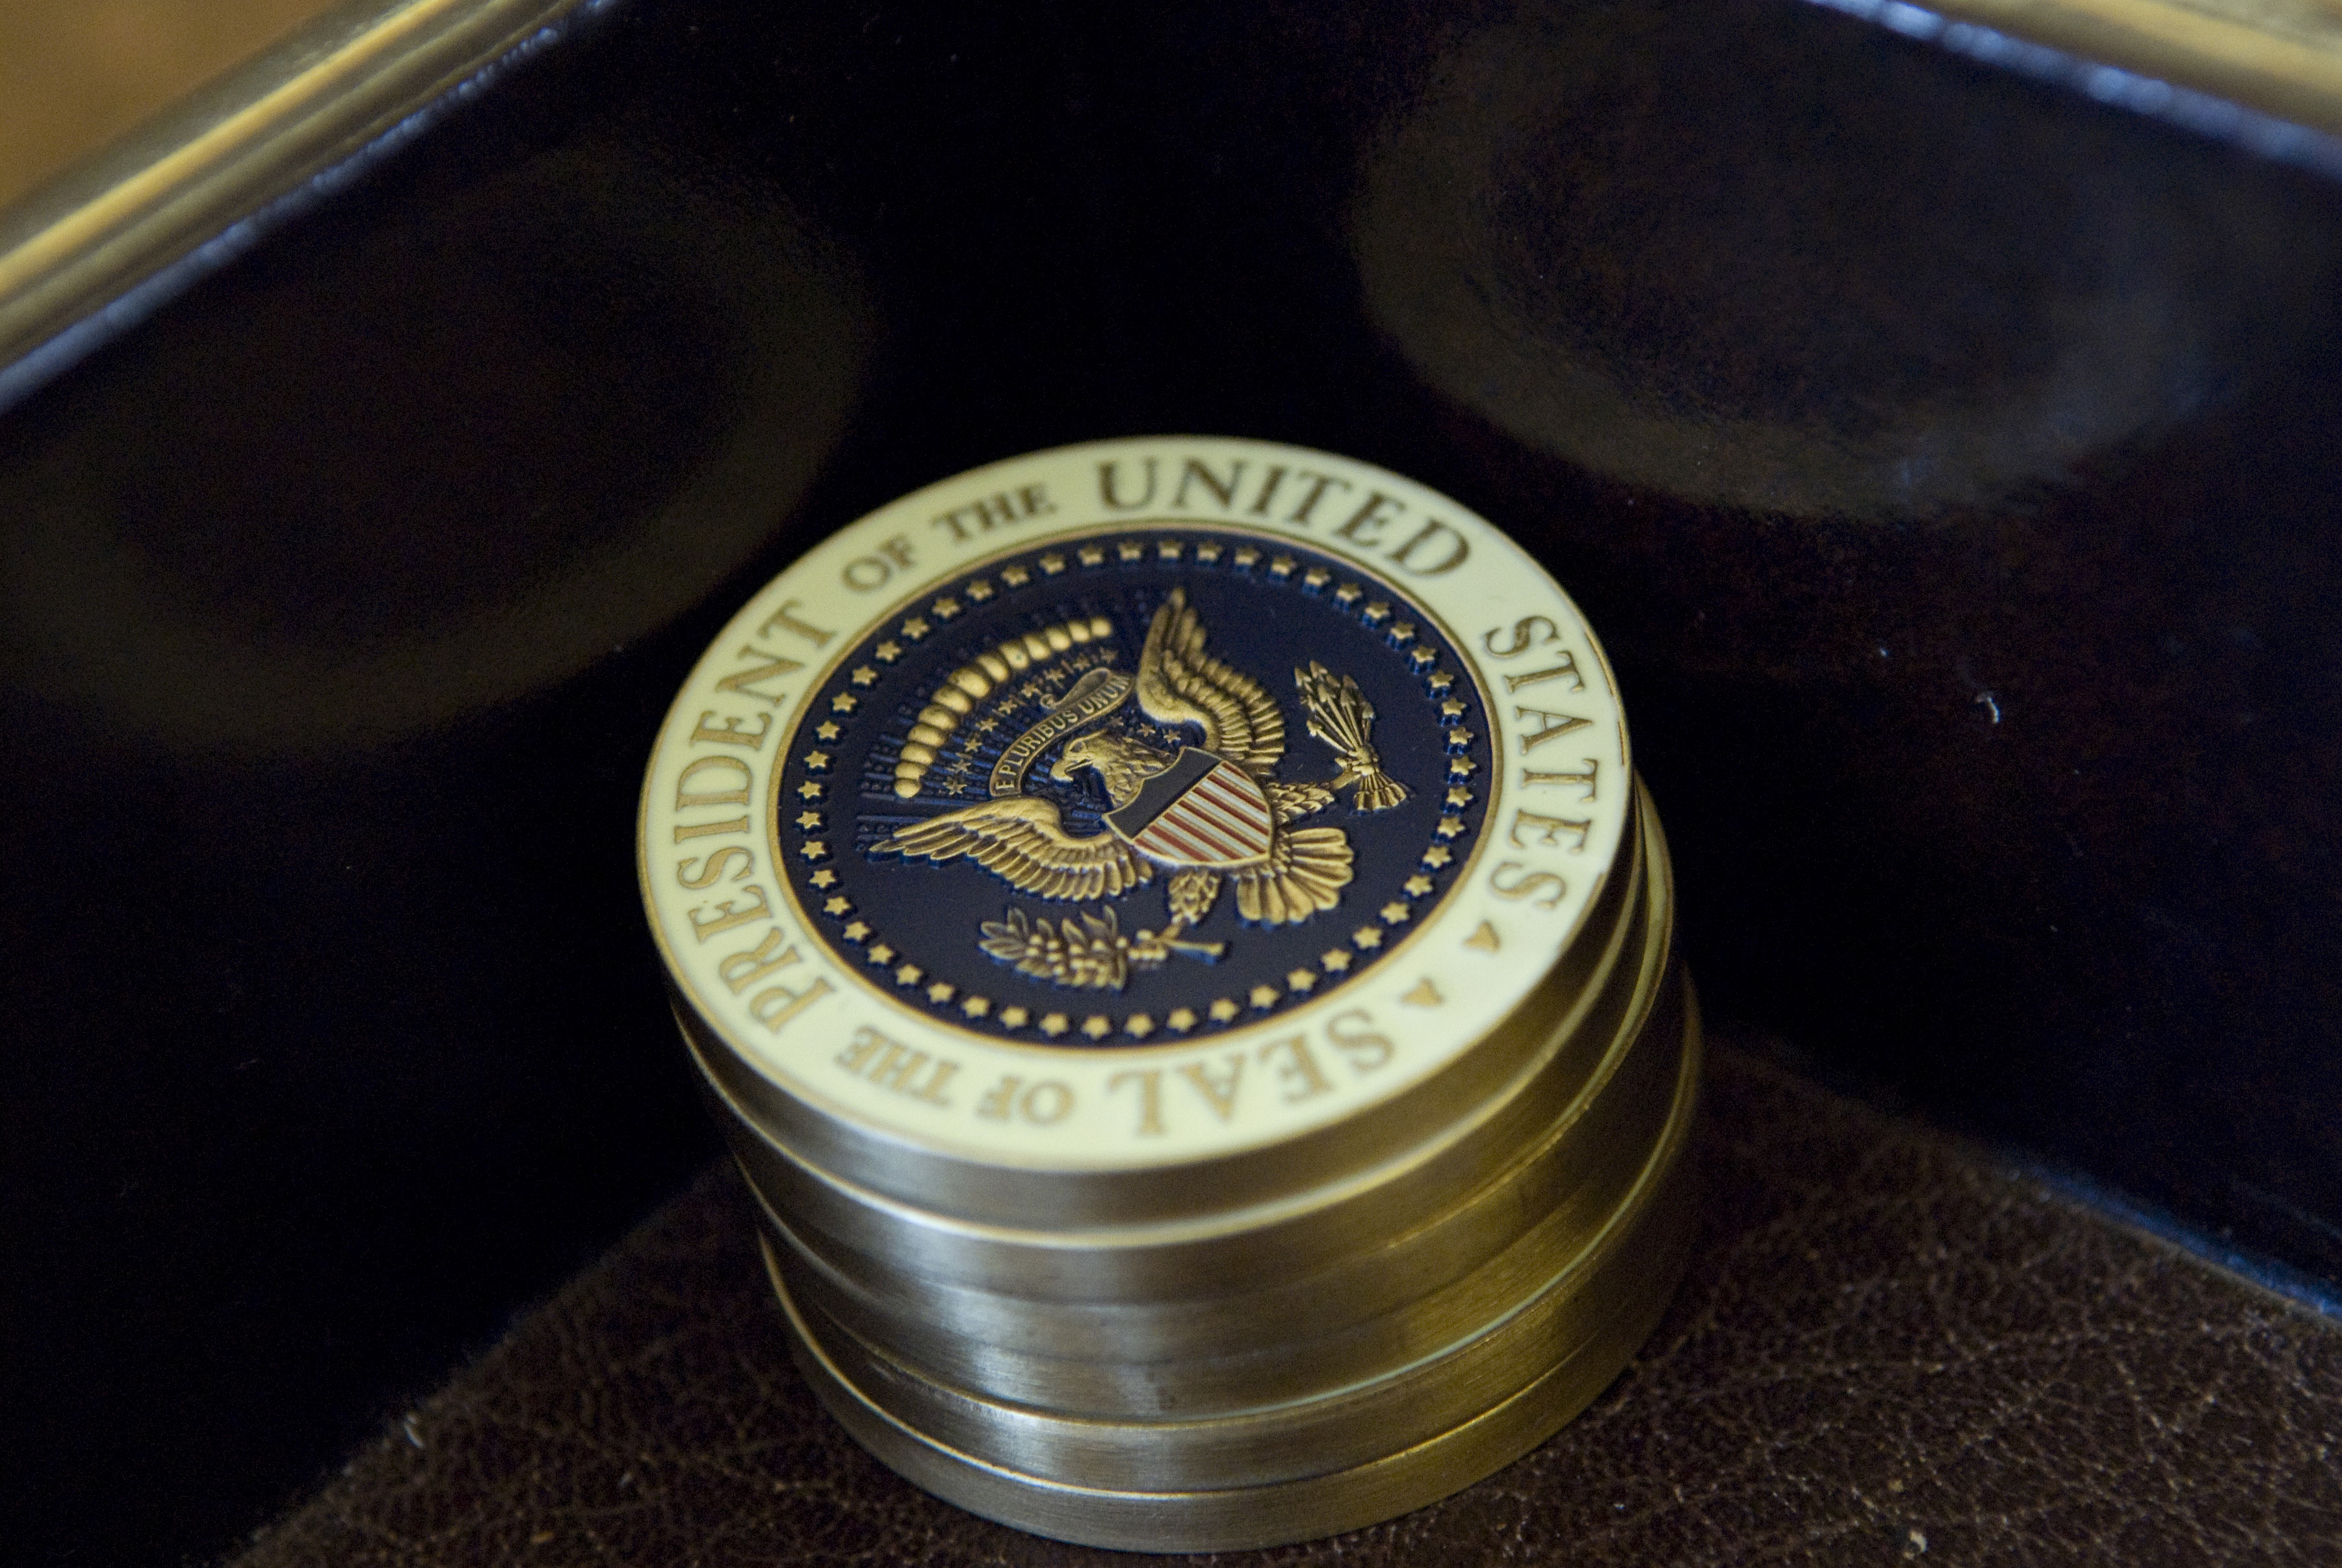 Challenge coins bearing the seal of the president sit on his desk in the Oval Office at the White House in Washington February 29, 2008.